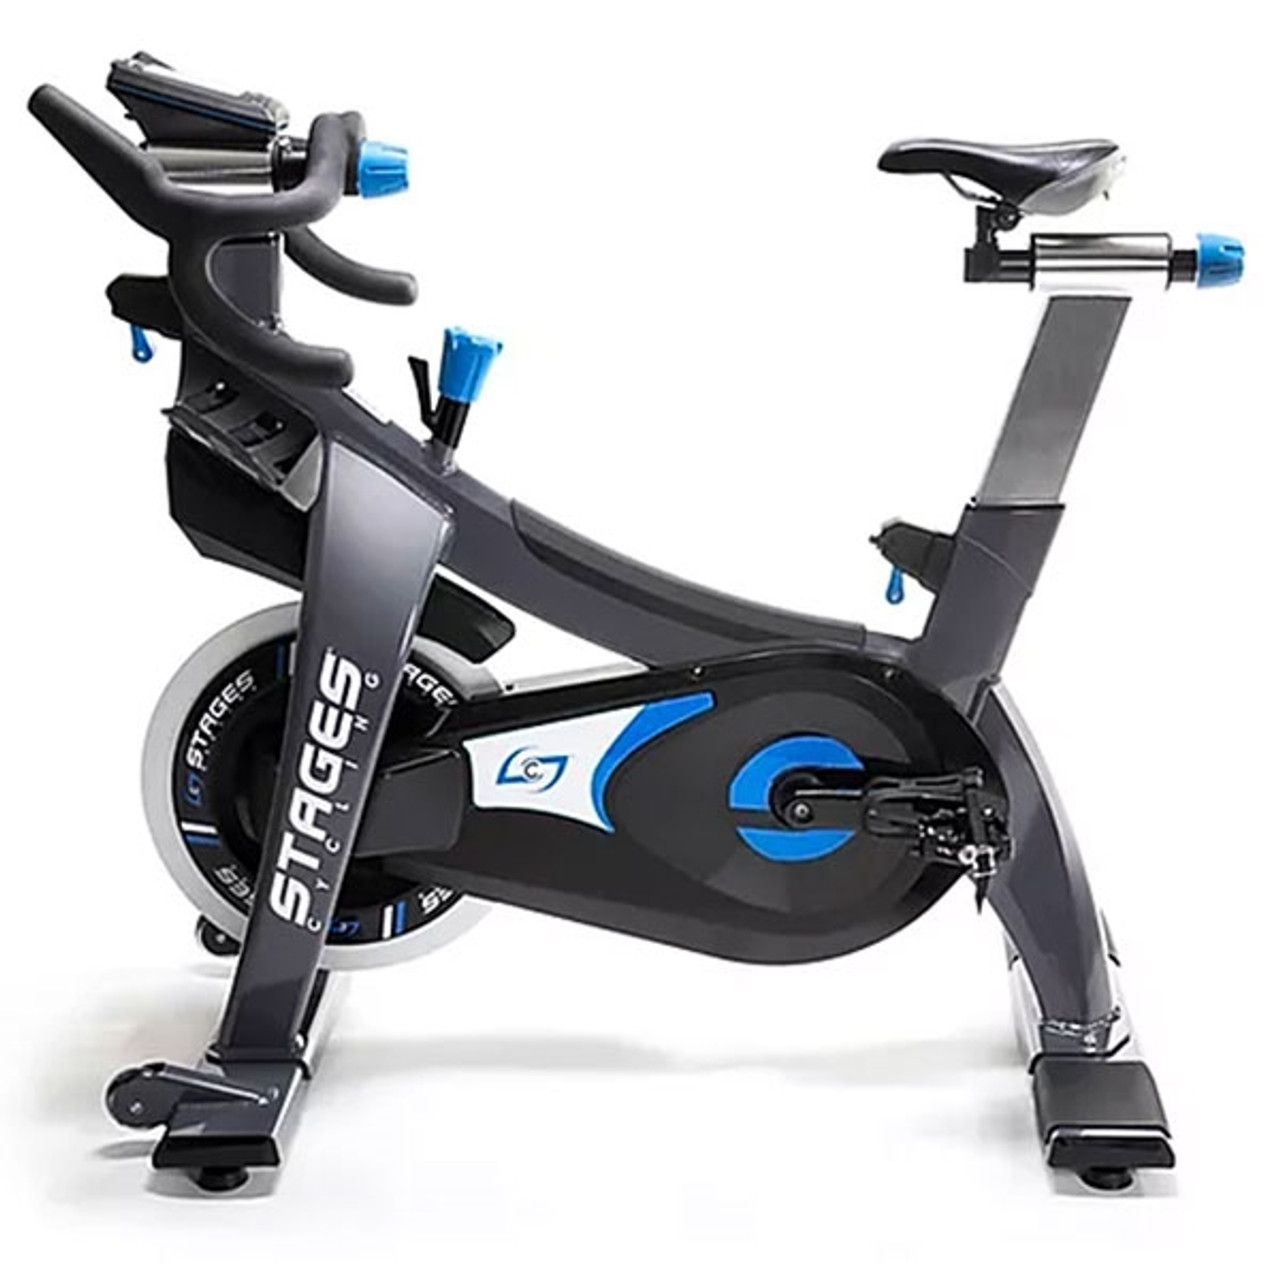 Stages SC3 Indoor Cycle w/Power Meter Side